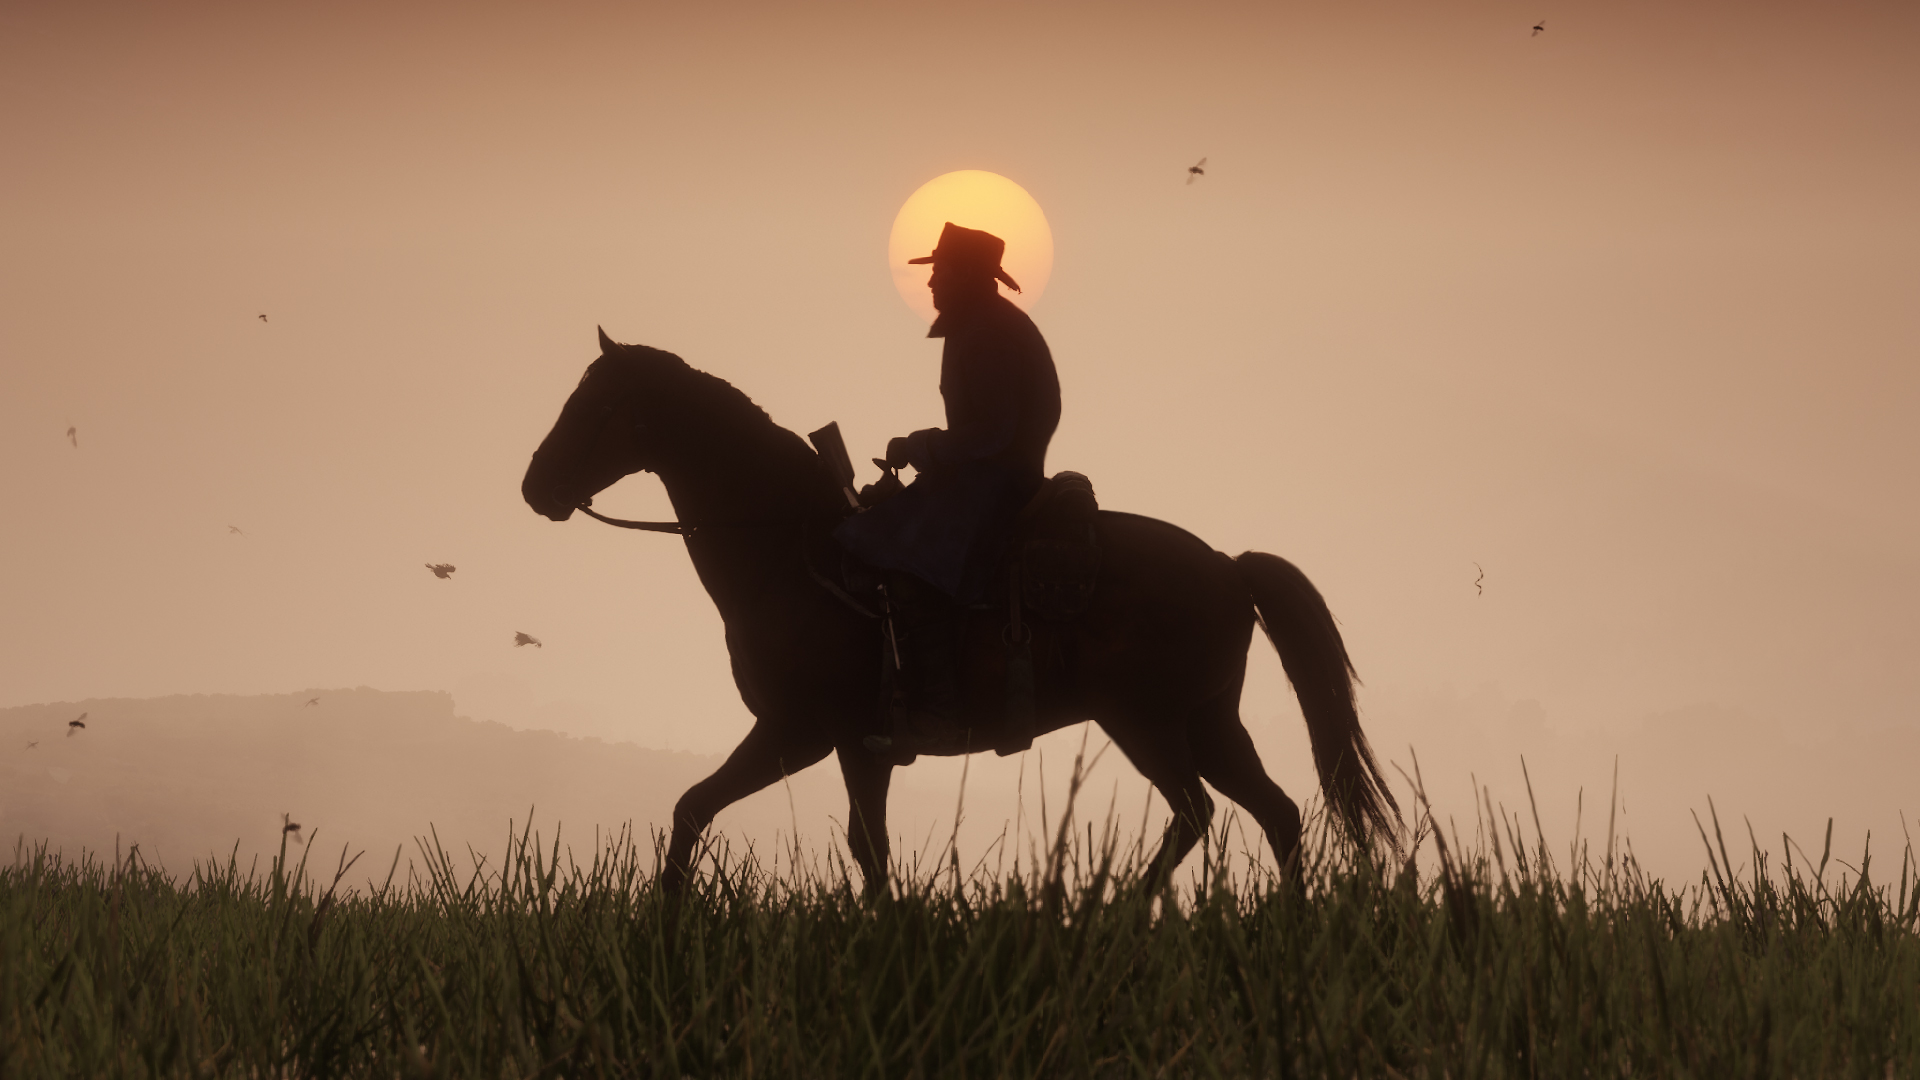 Red Dead Redemption 2 gameplay trailer shows off terrains, deeper interactions and camps